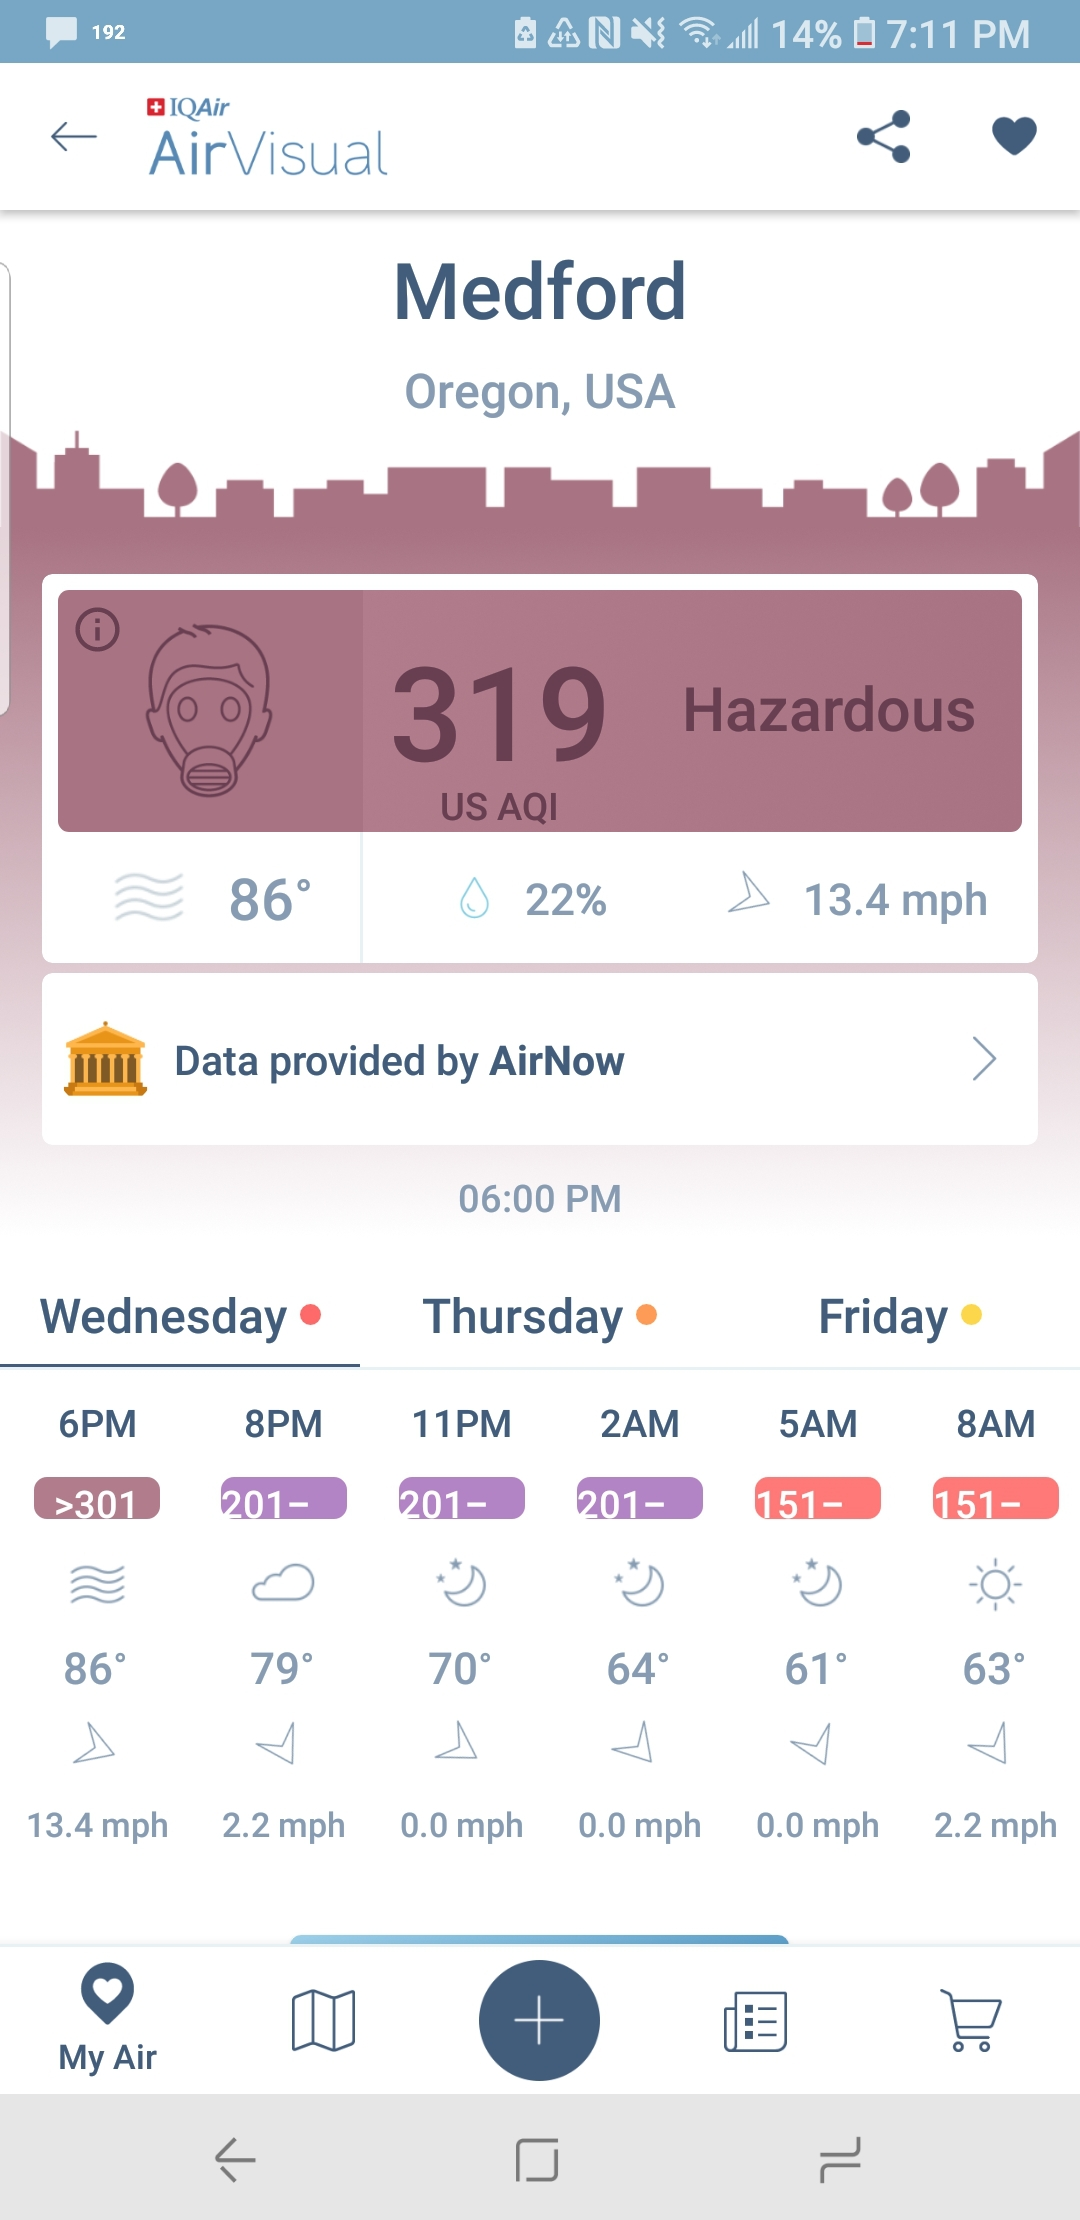 Hazardous. - The AirVisual app shows an icon to help you know what kind of protection to use if you have to go outside.